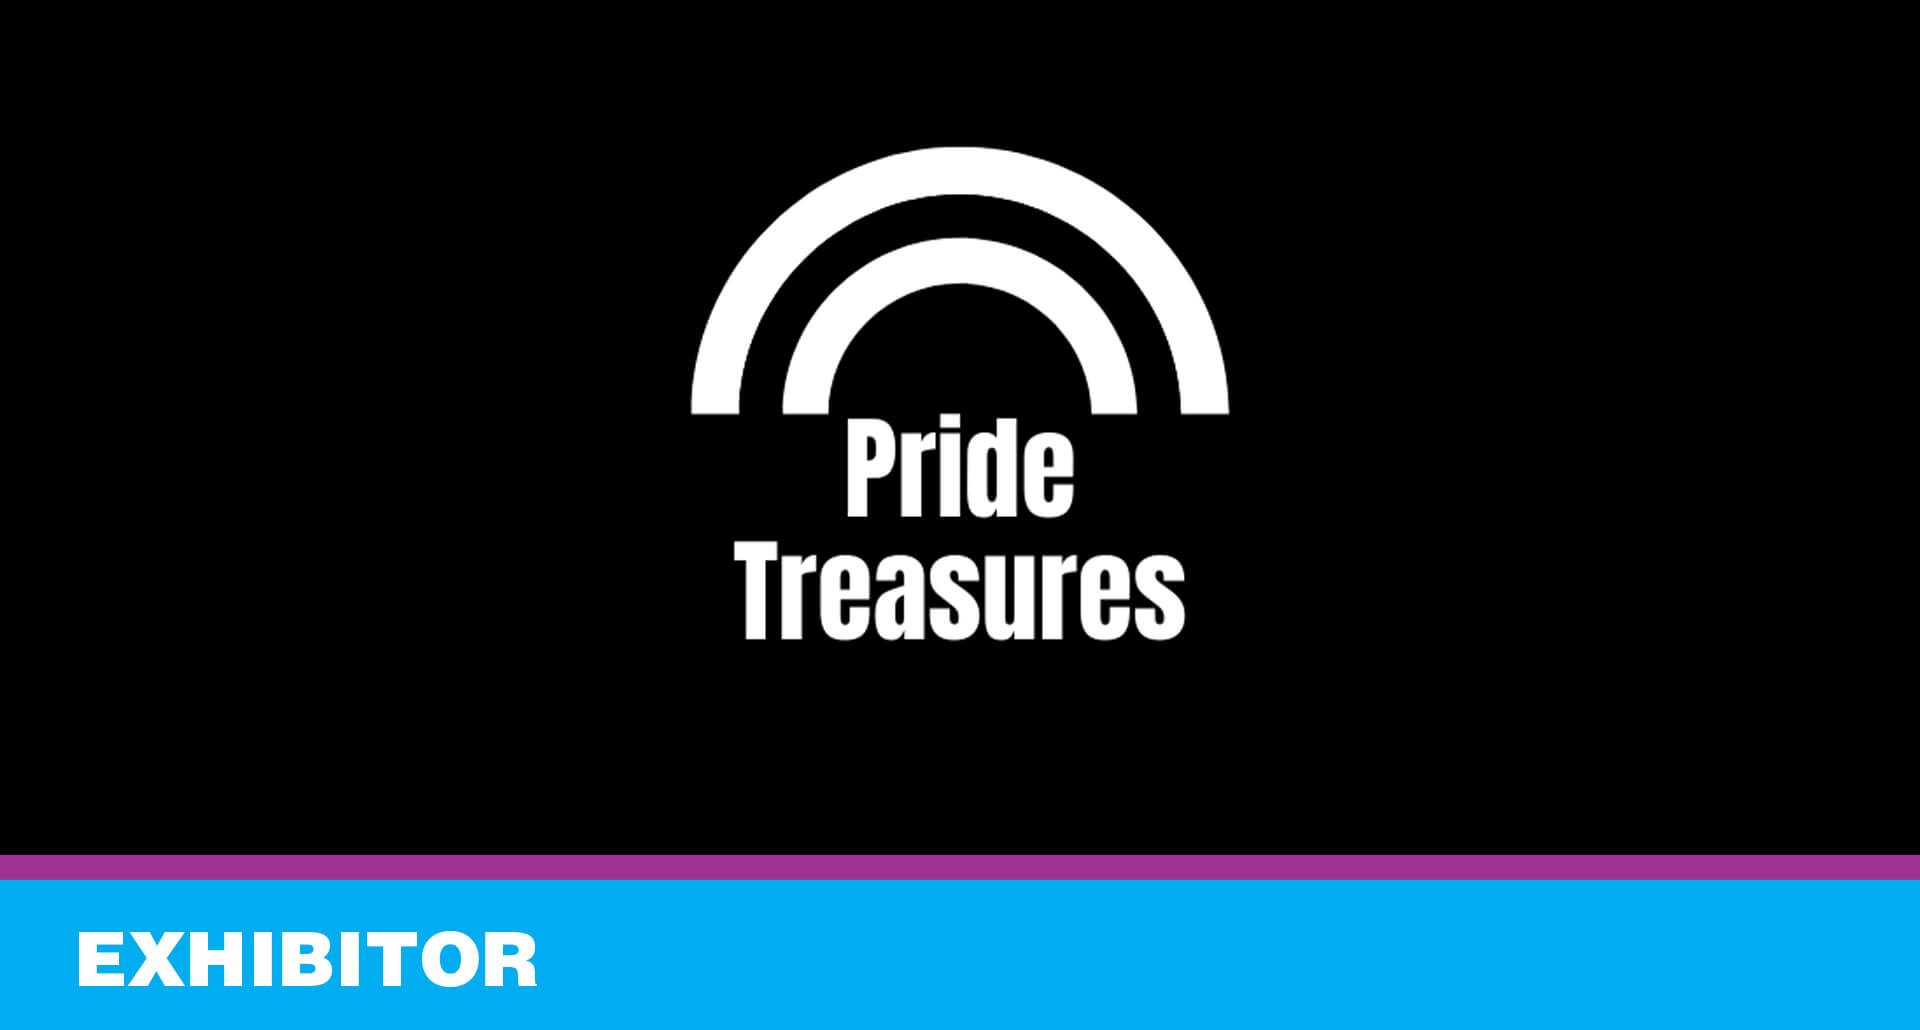 Pride Treasures